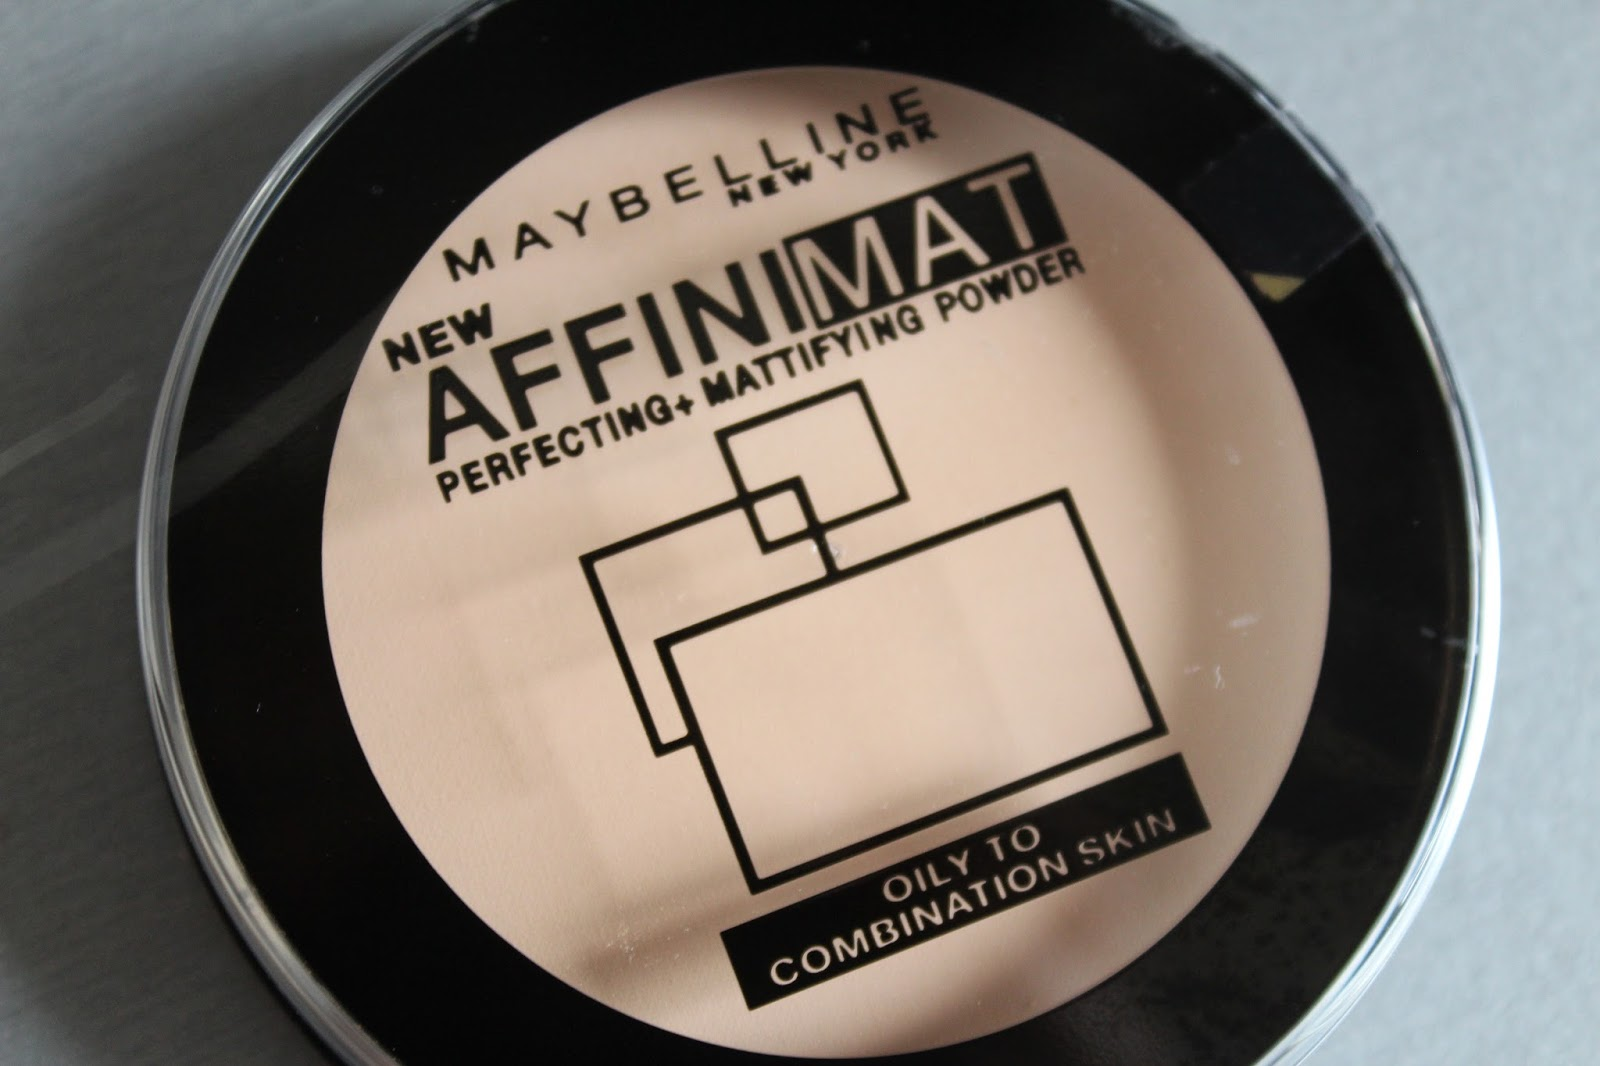 Maybelline Affinimat Perfecting + Mattifying Powder (kameni puder)